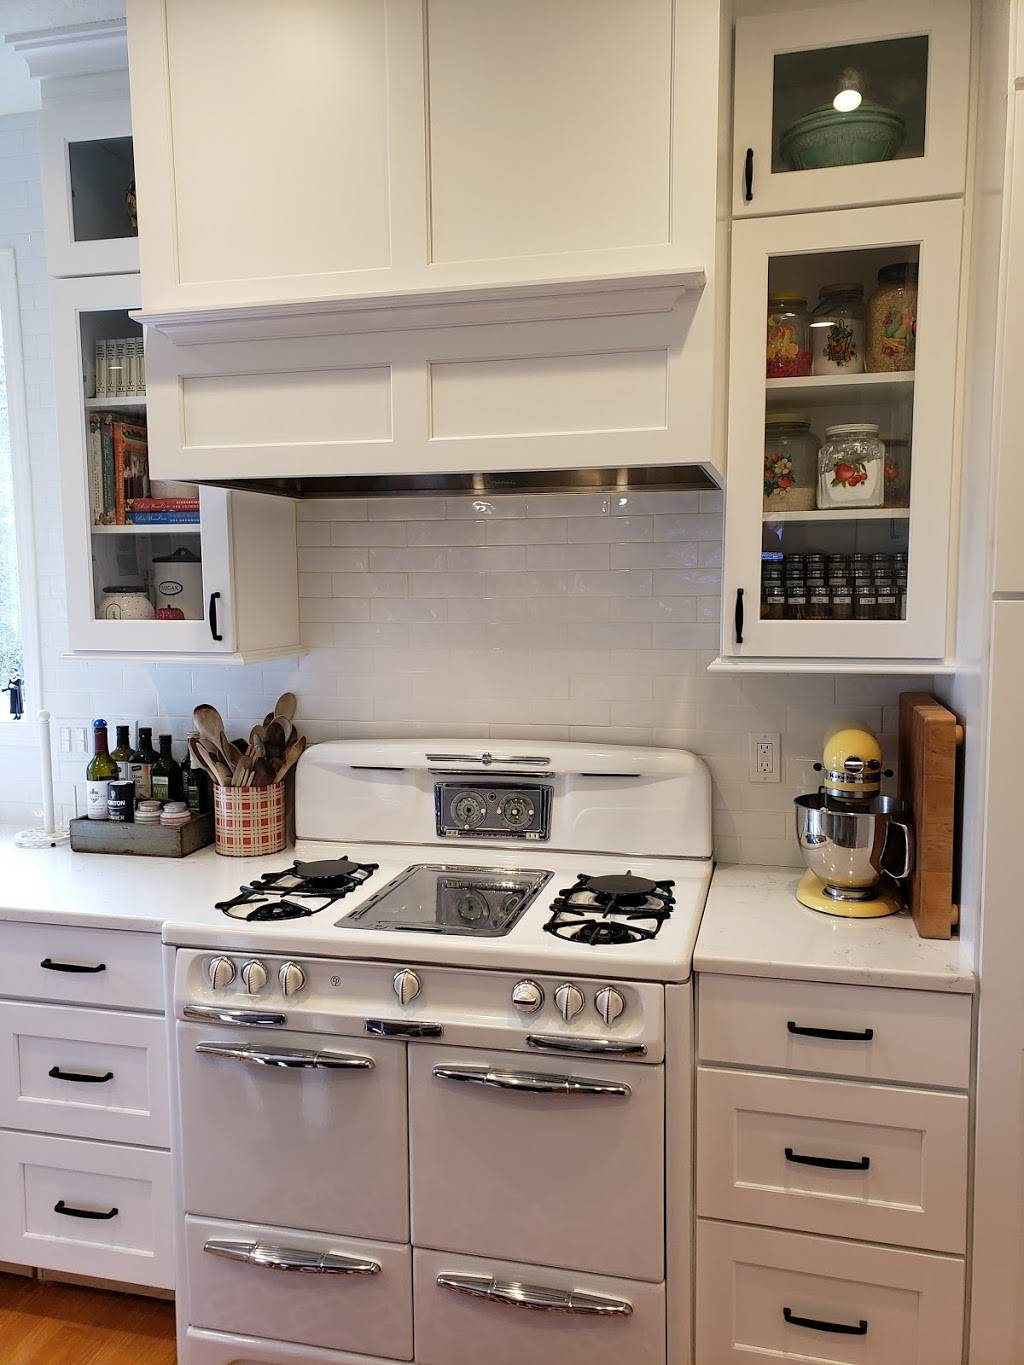 Rose Gold Kitchen Bath Remodel - home goods store  | Photo 5 of 10 | Address: Beaverton, OR 97007, USA | Phone: (503) 336-0323